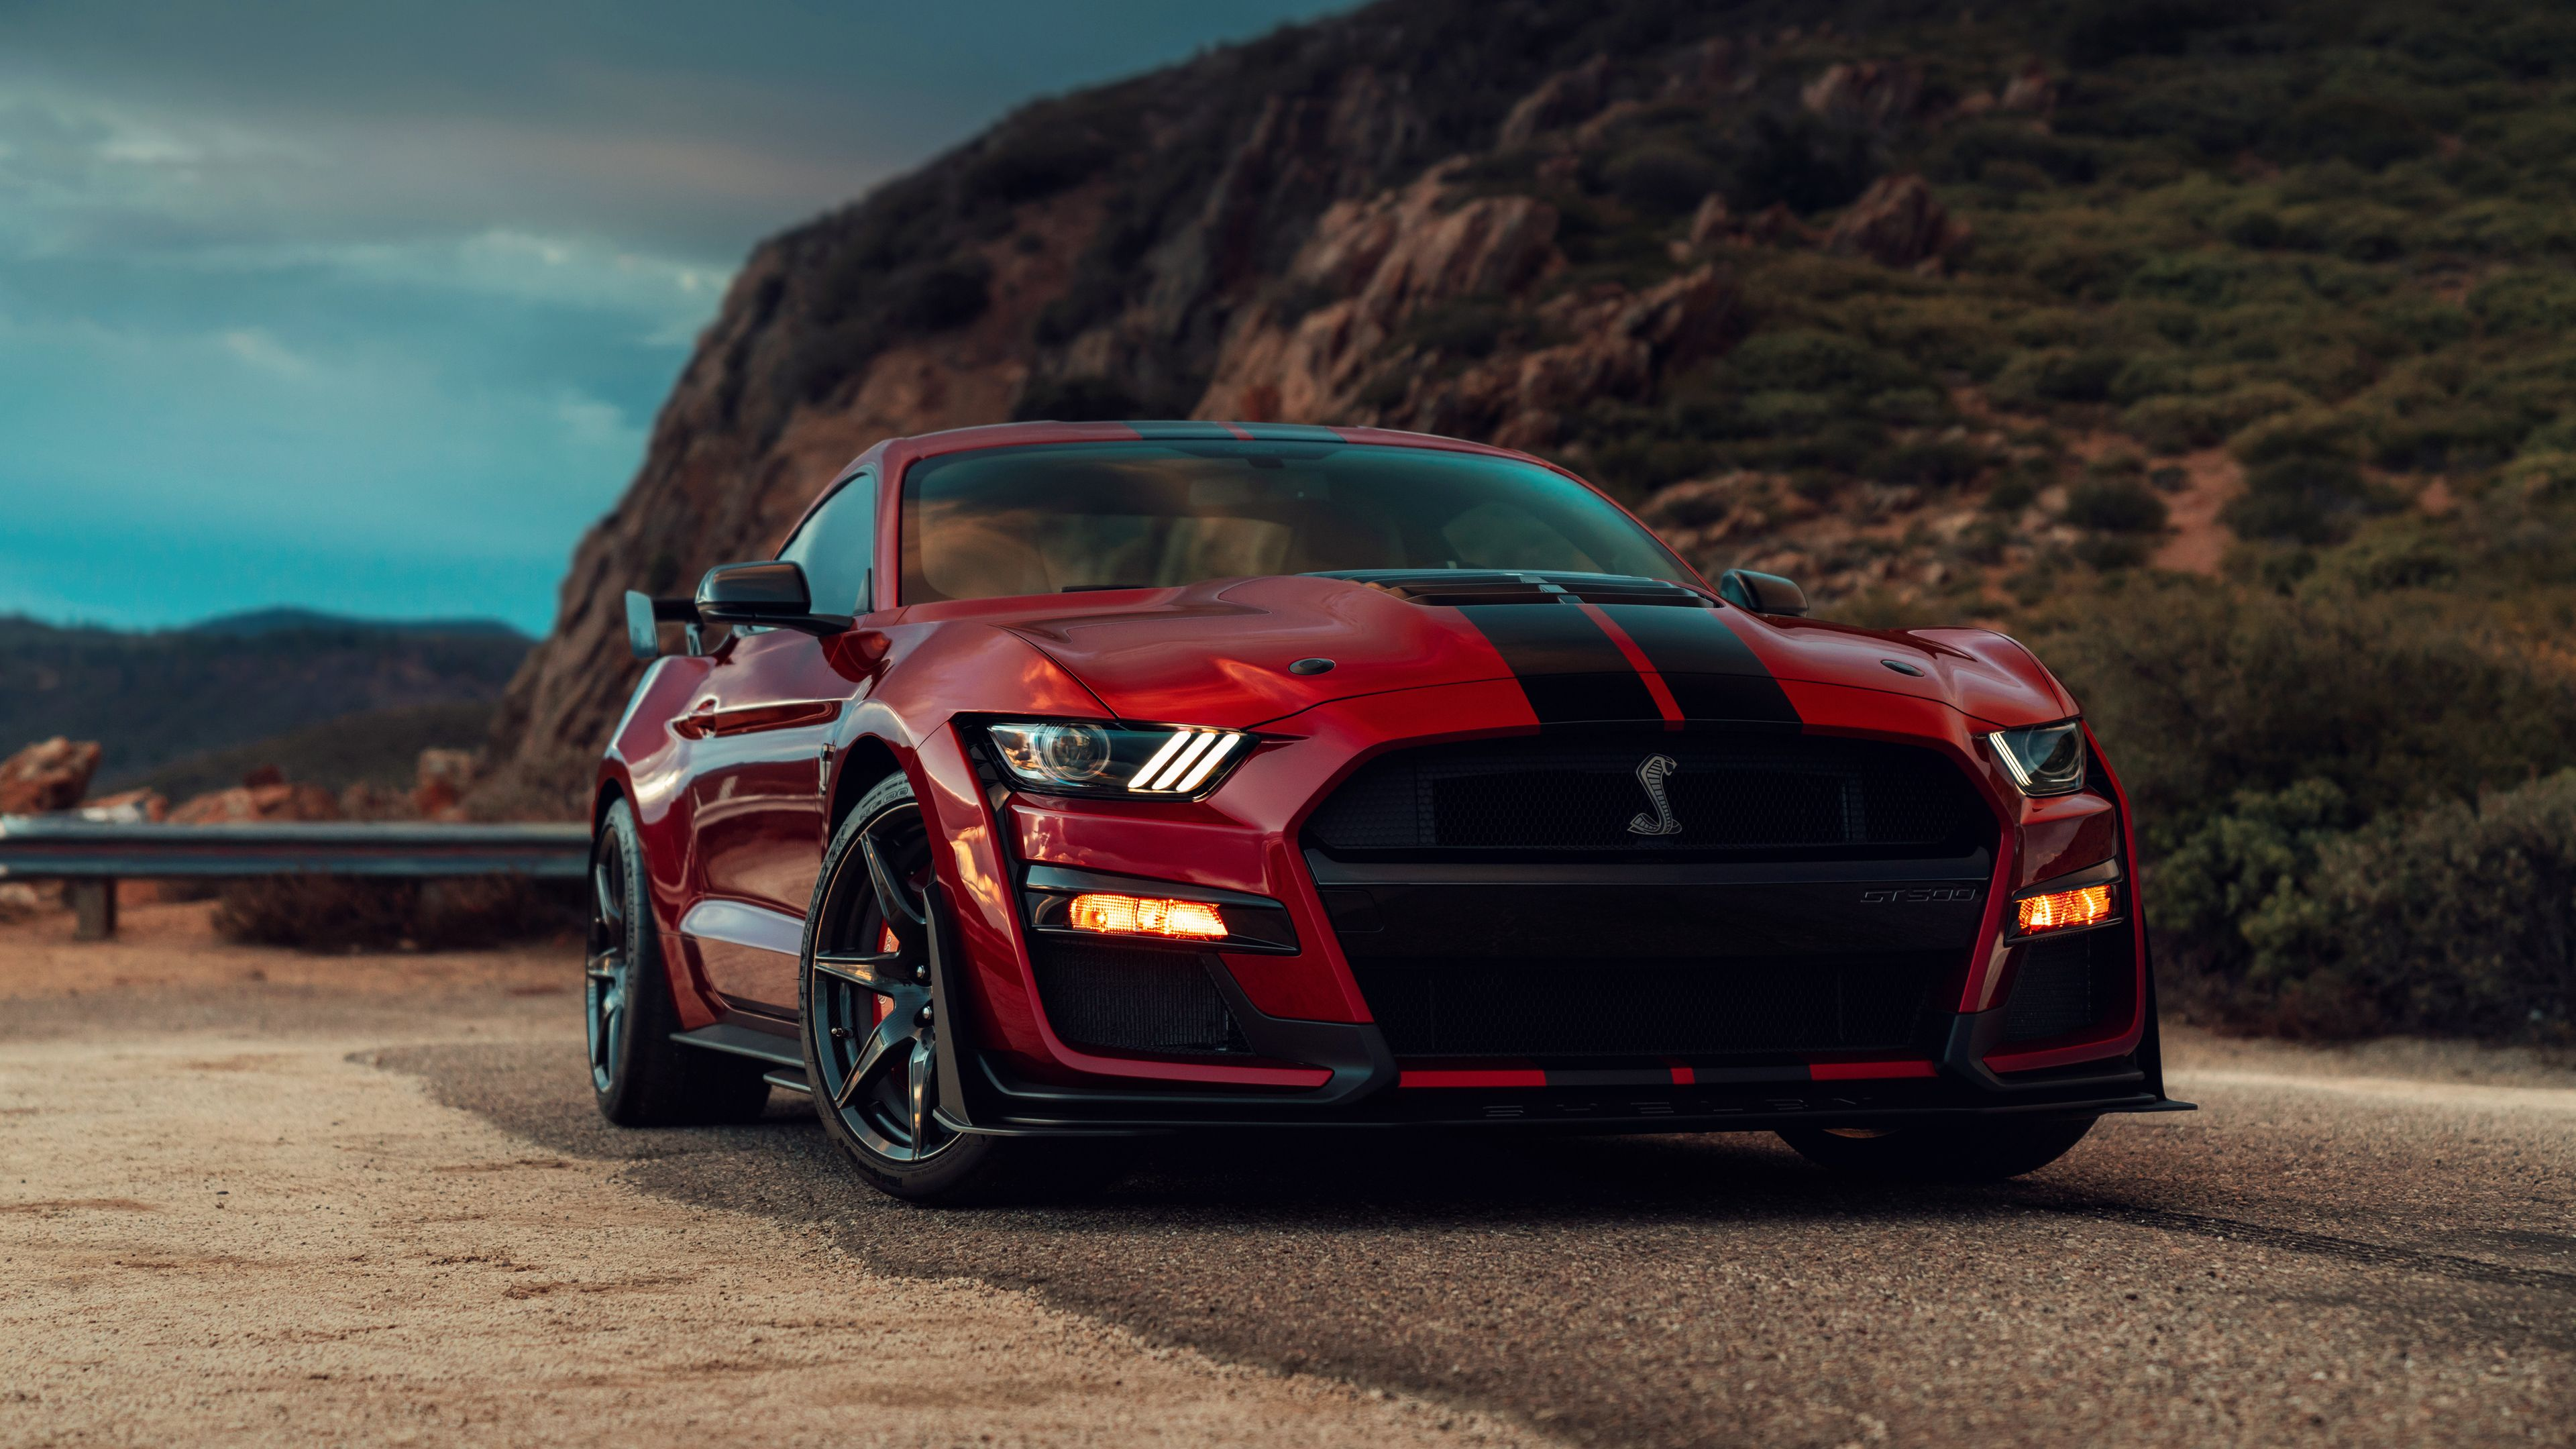 2020 Ford Mustang Shelby Gt500 4k Shelby Wallpapers Hd Wallpapers Ford Wallpapers Ford Mustang Ford Mustang Shelby Gt500 Mustang Shelby Shelby Mustang Gt500